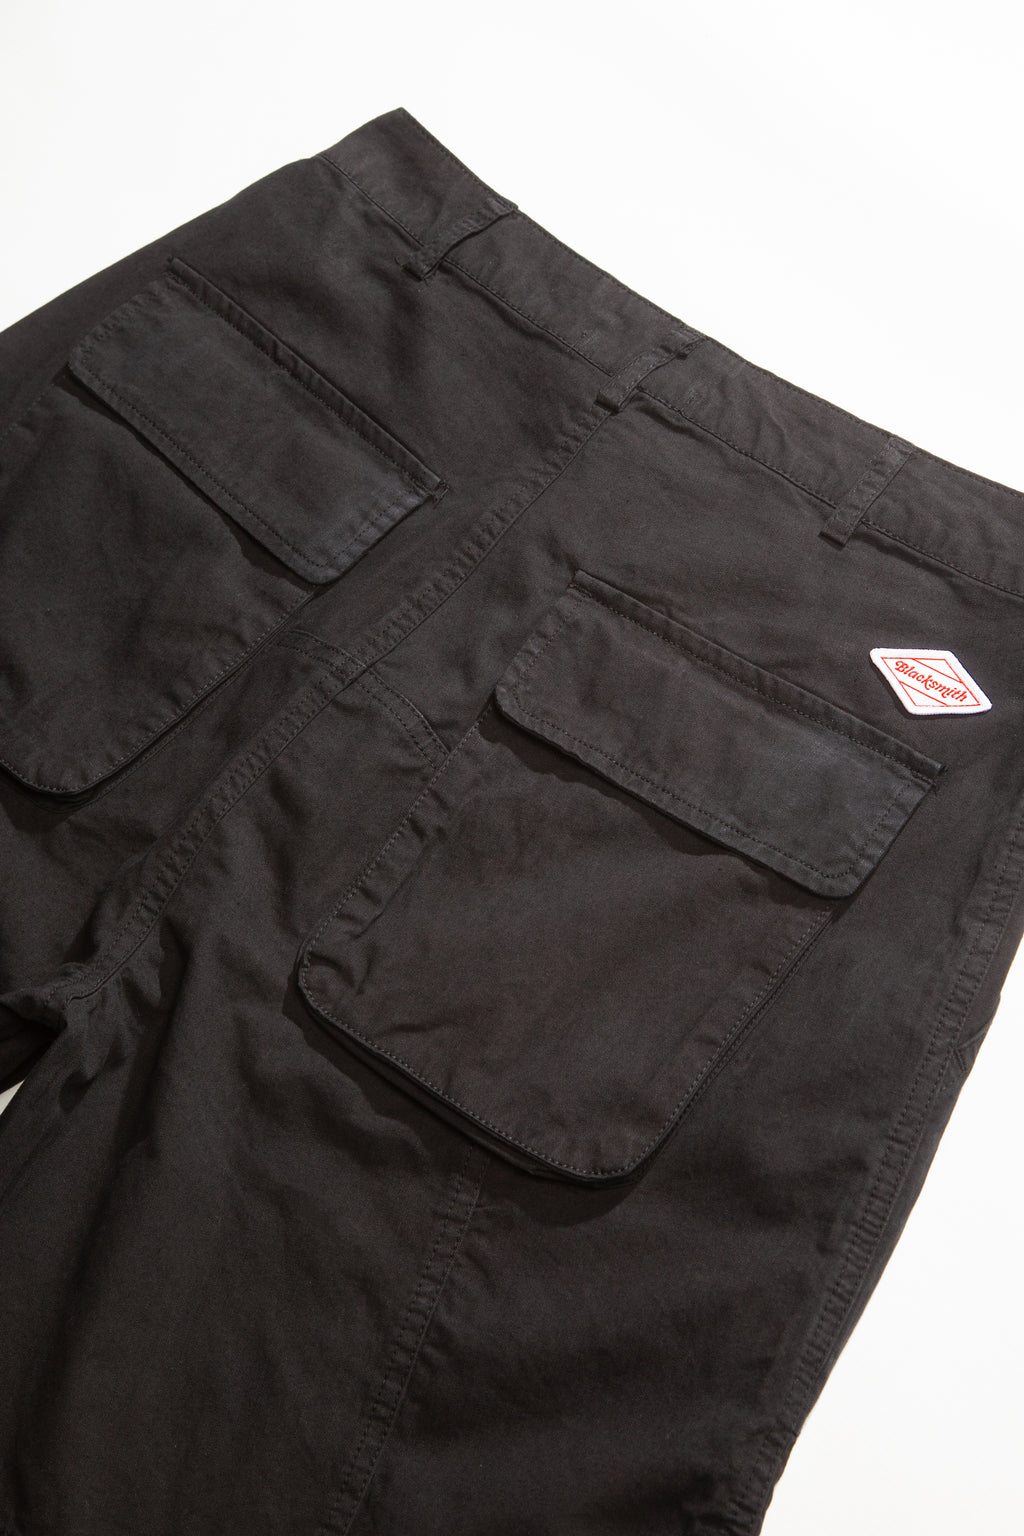 Blacksmith - Sateen Fatigue Shorts - Black